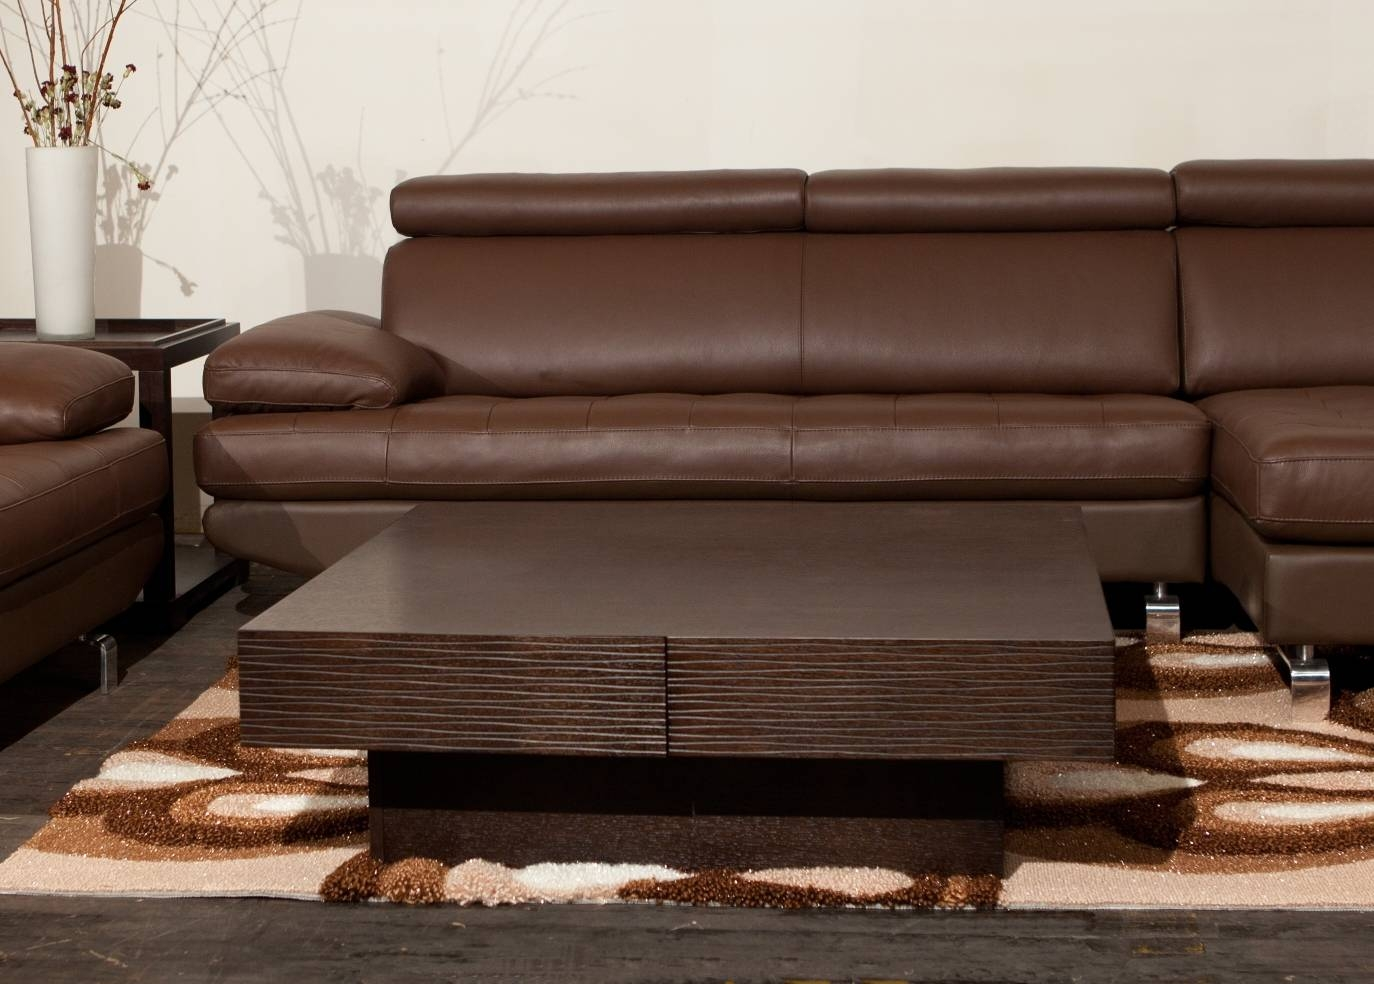 Cambridge Dark Brown Wood Modern Coffee Table - Chocoaddicts within Wood Modern Coffee Tables (Image 1 of 30)